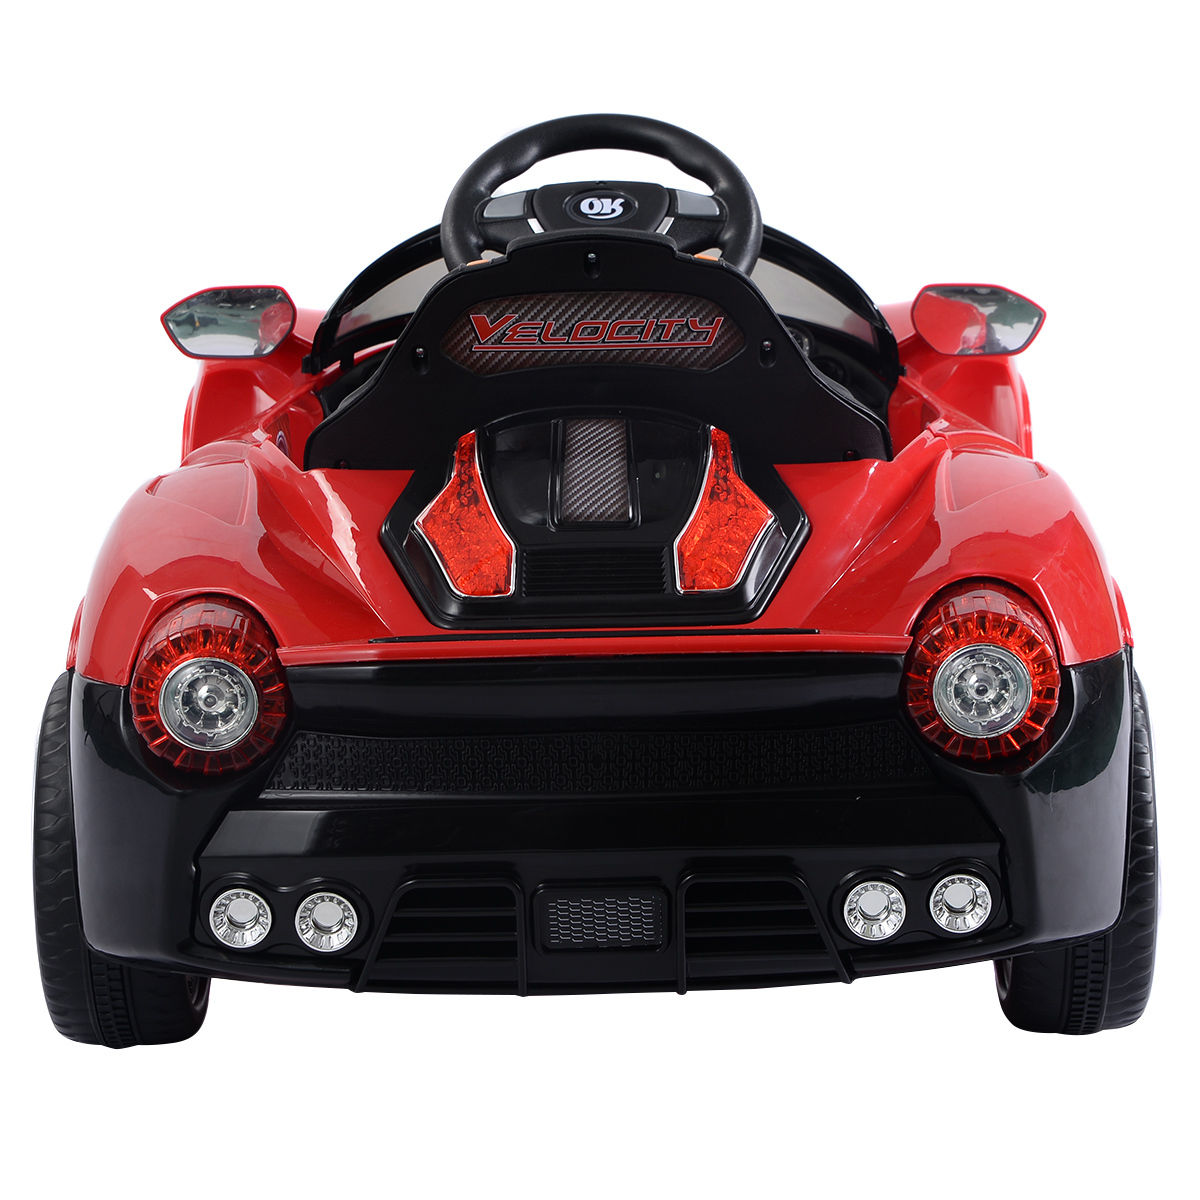 Juguetes Electronicos 12V Battery Powered Kids Ride On Car RC Remote Control w/ LED Lights Music + juguetes electronicos en VeoyCompro.net